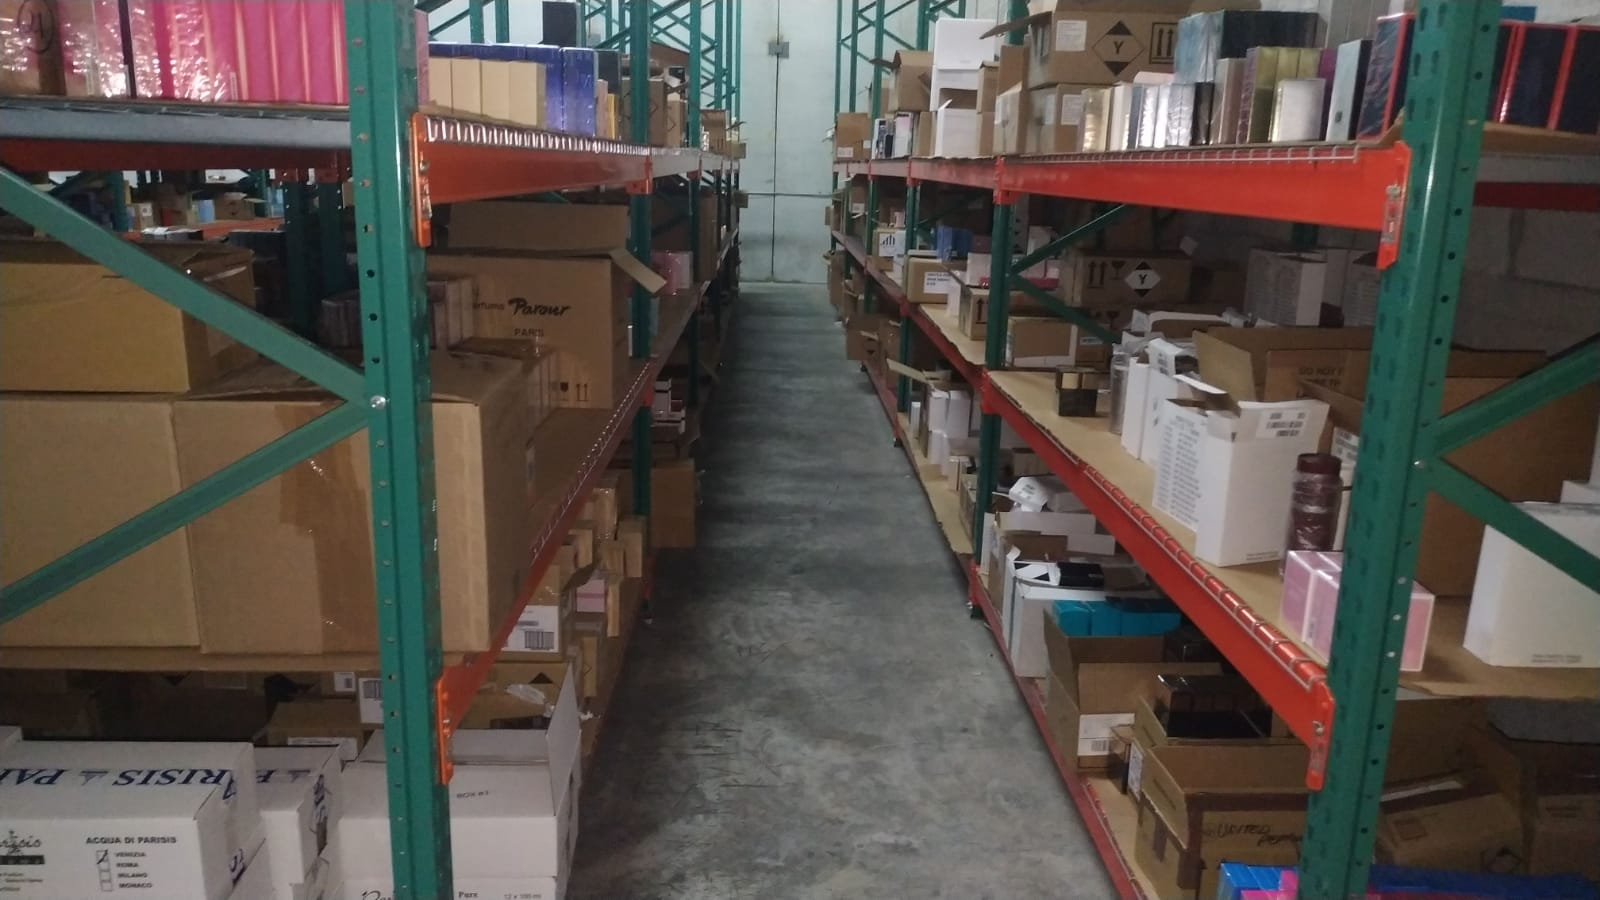 warehouse-image-12jpg.jpg